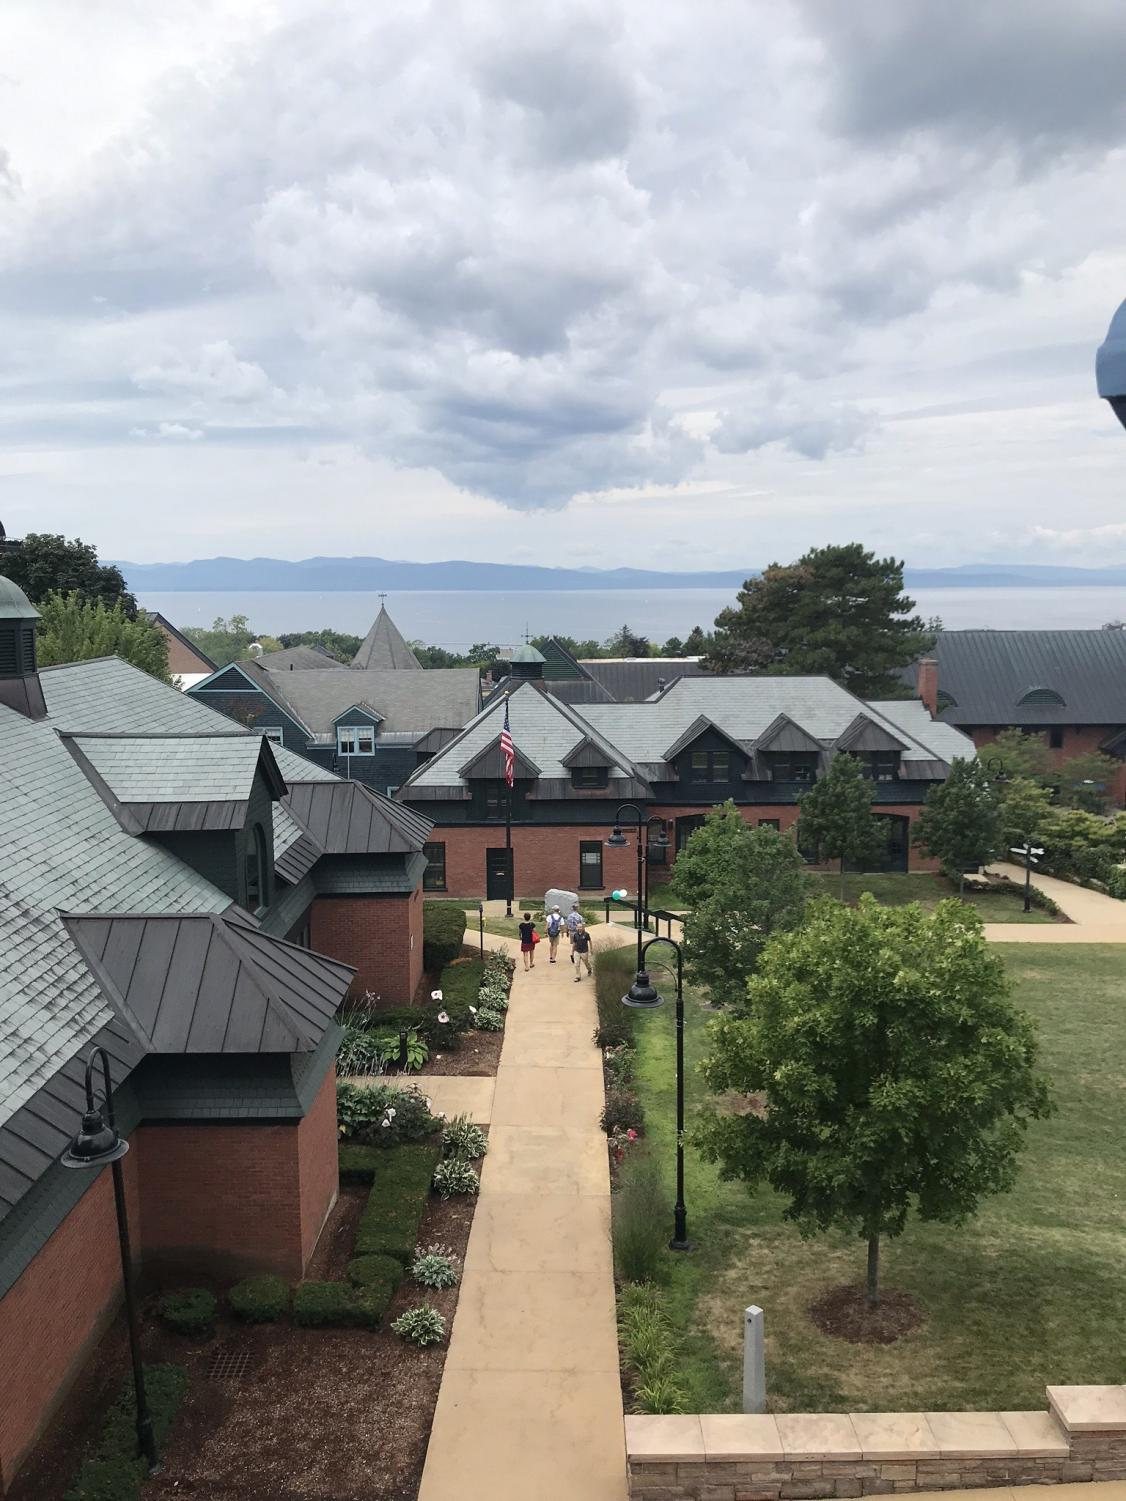 Photo of campus from Library, taken by Haley Seymour in 2019.